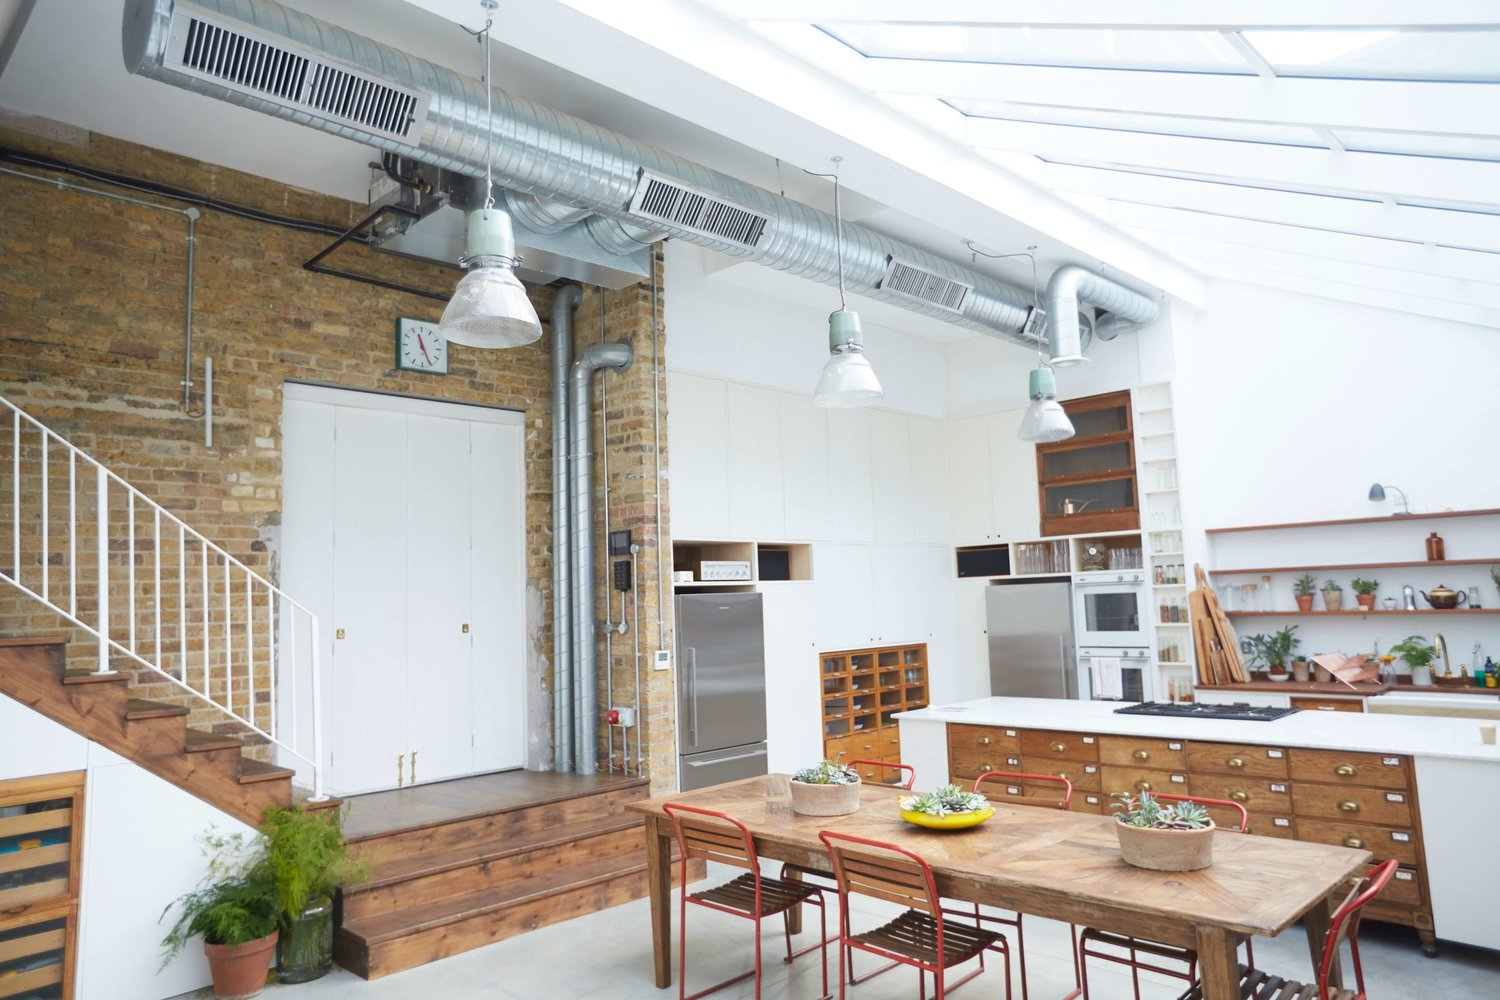 Exposed Ductwork: Creating the \'Industrial\' Look